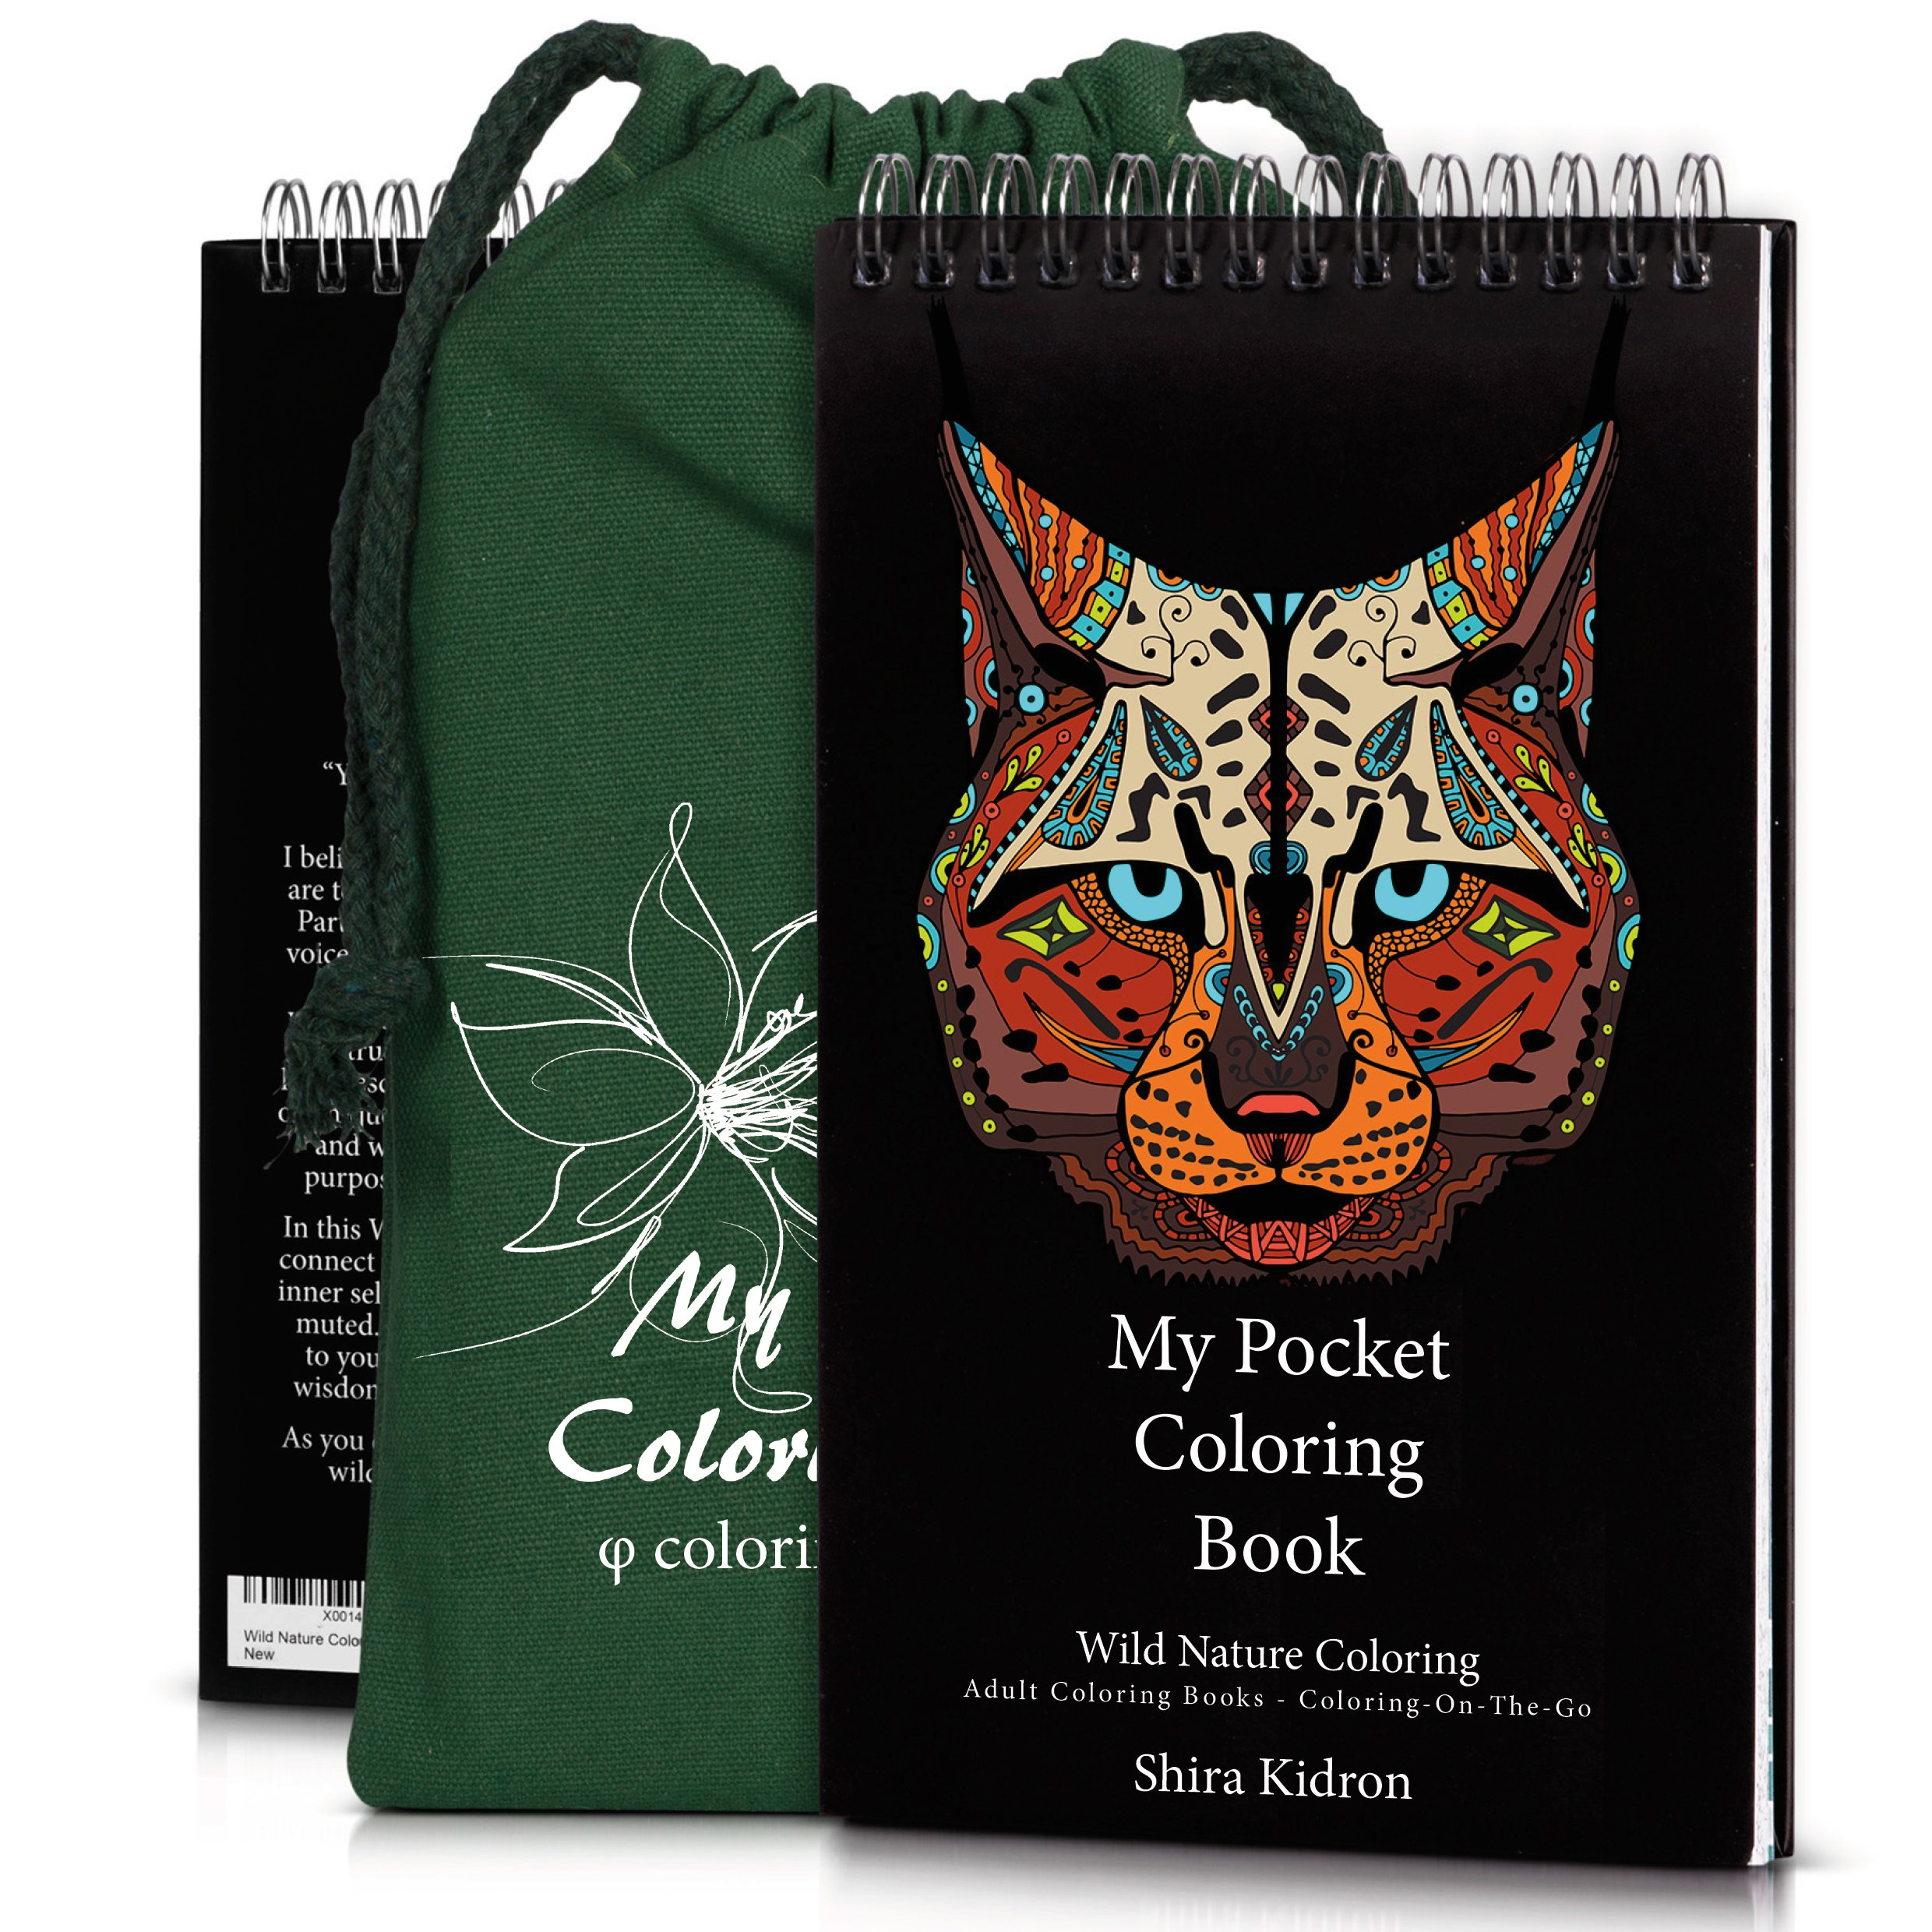 Coloring-On-The-Go Coloring Books for Adults & Grownups –74 Wild Nature Pages W/ Durable Designed Pouch& Hardcover Spiral Bound Format-Deluxe Portable DIY Craft Creative Kit -Be Artistic Everywhere!